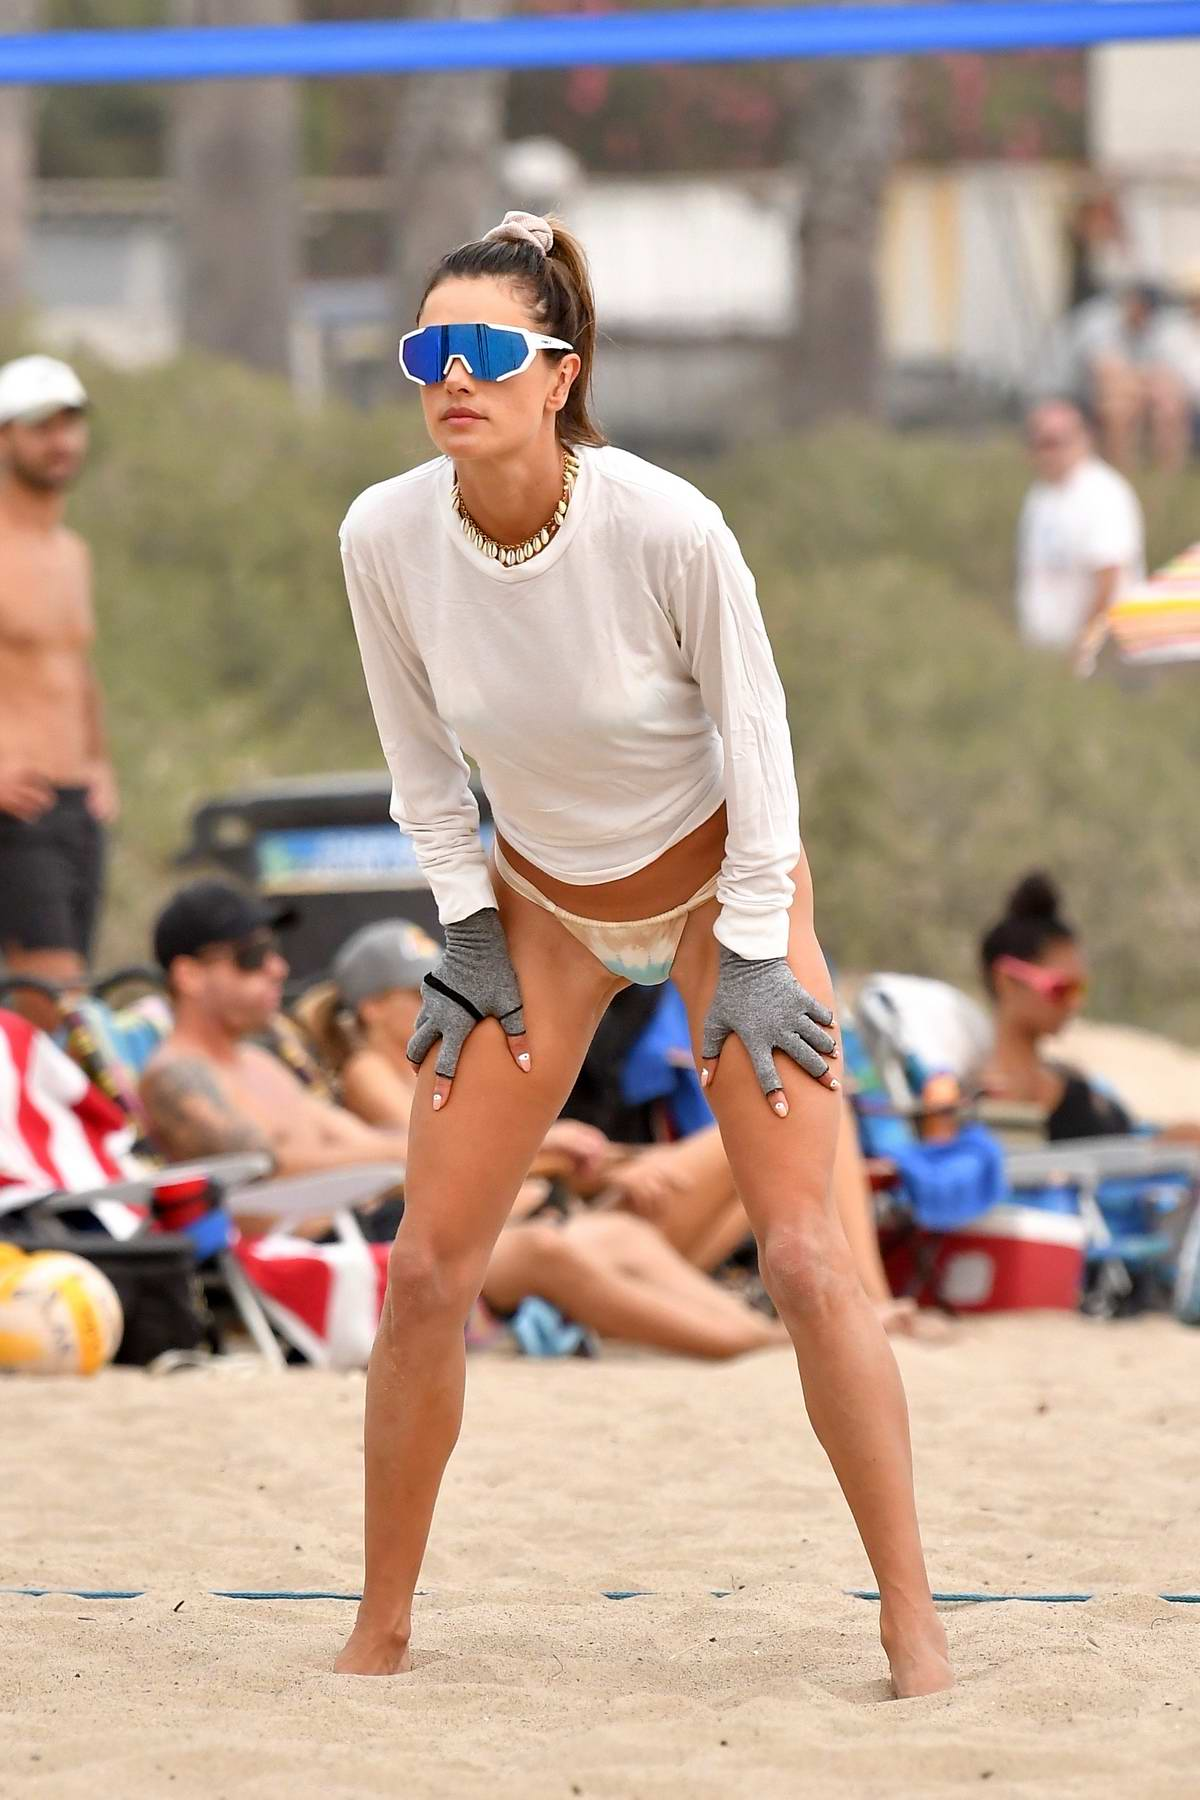 Alessandra Ambrosio stuns in a tie-dye bikini while playing volleyball on the beach with friends in Malibu, California